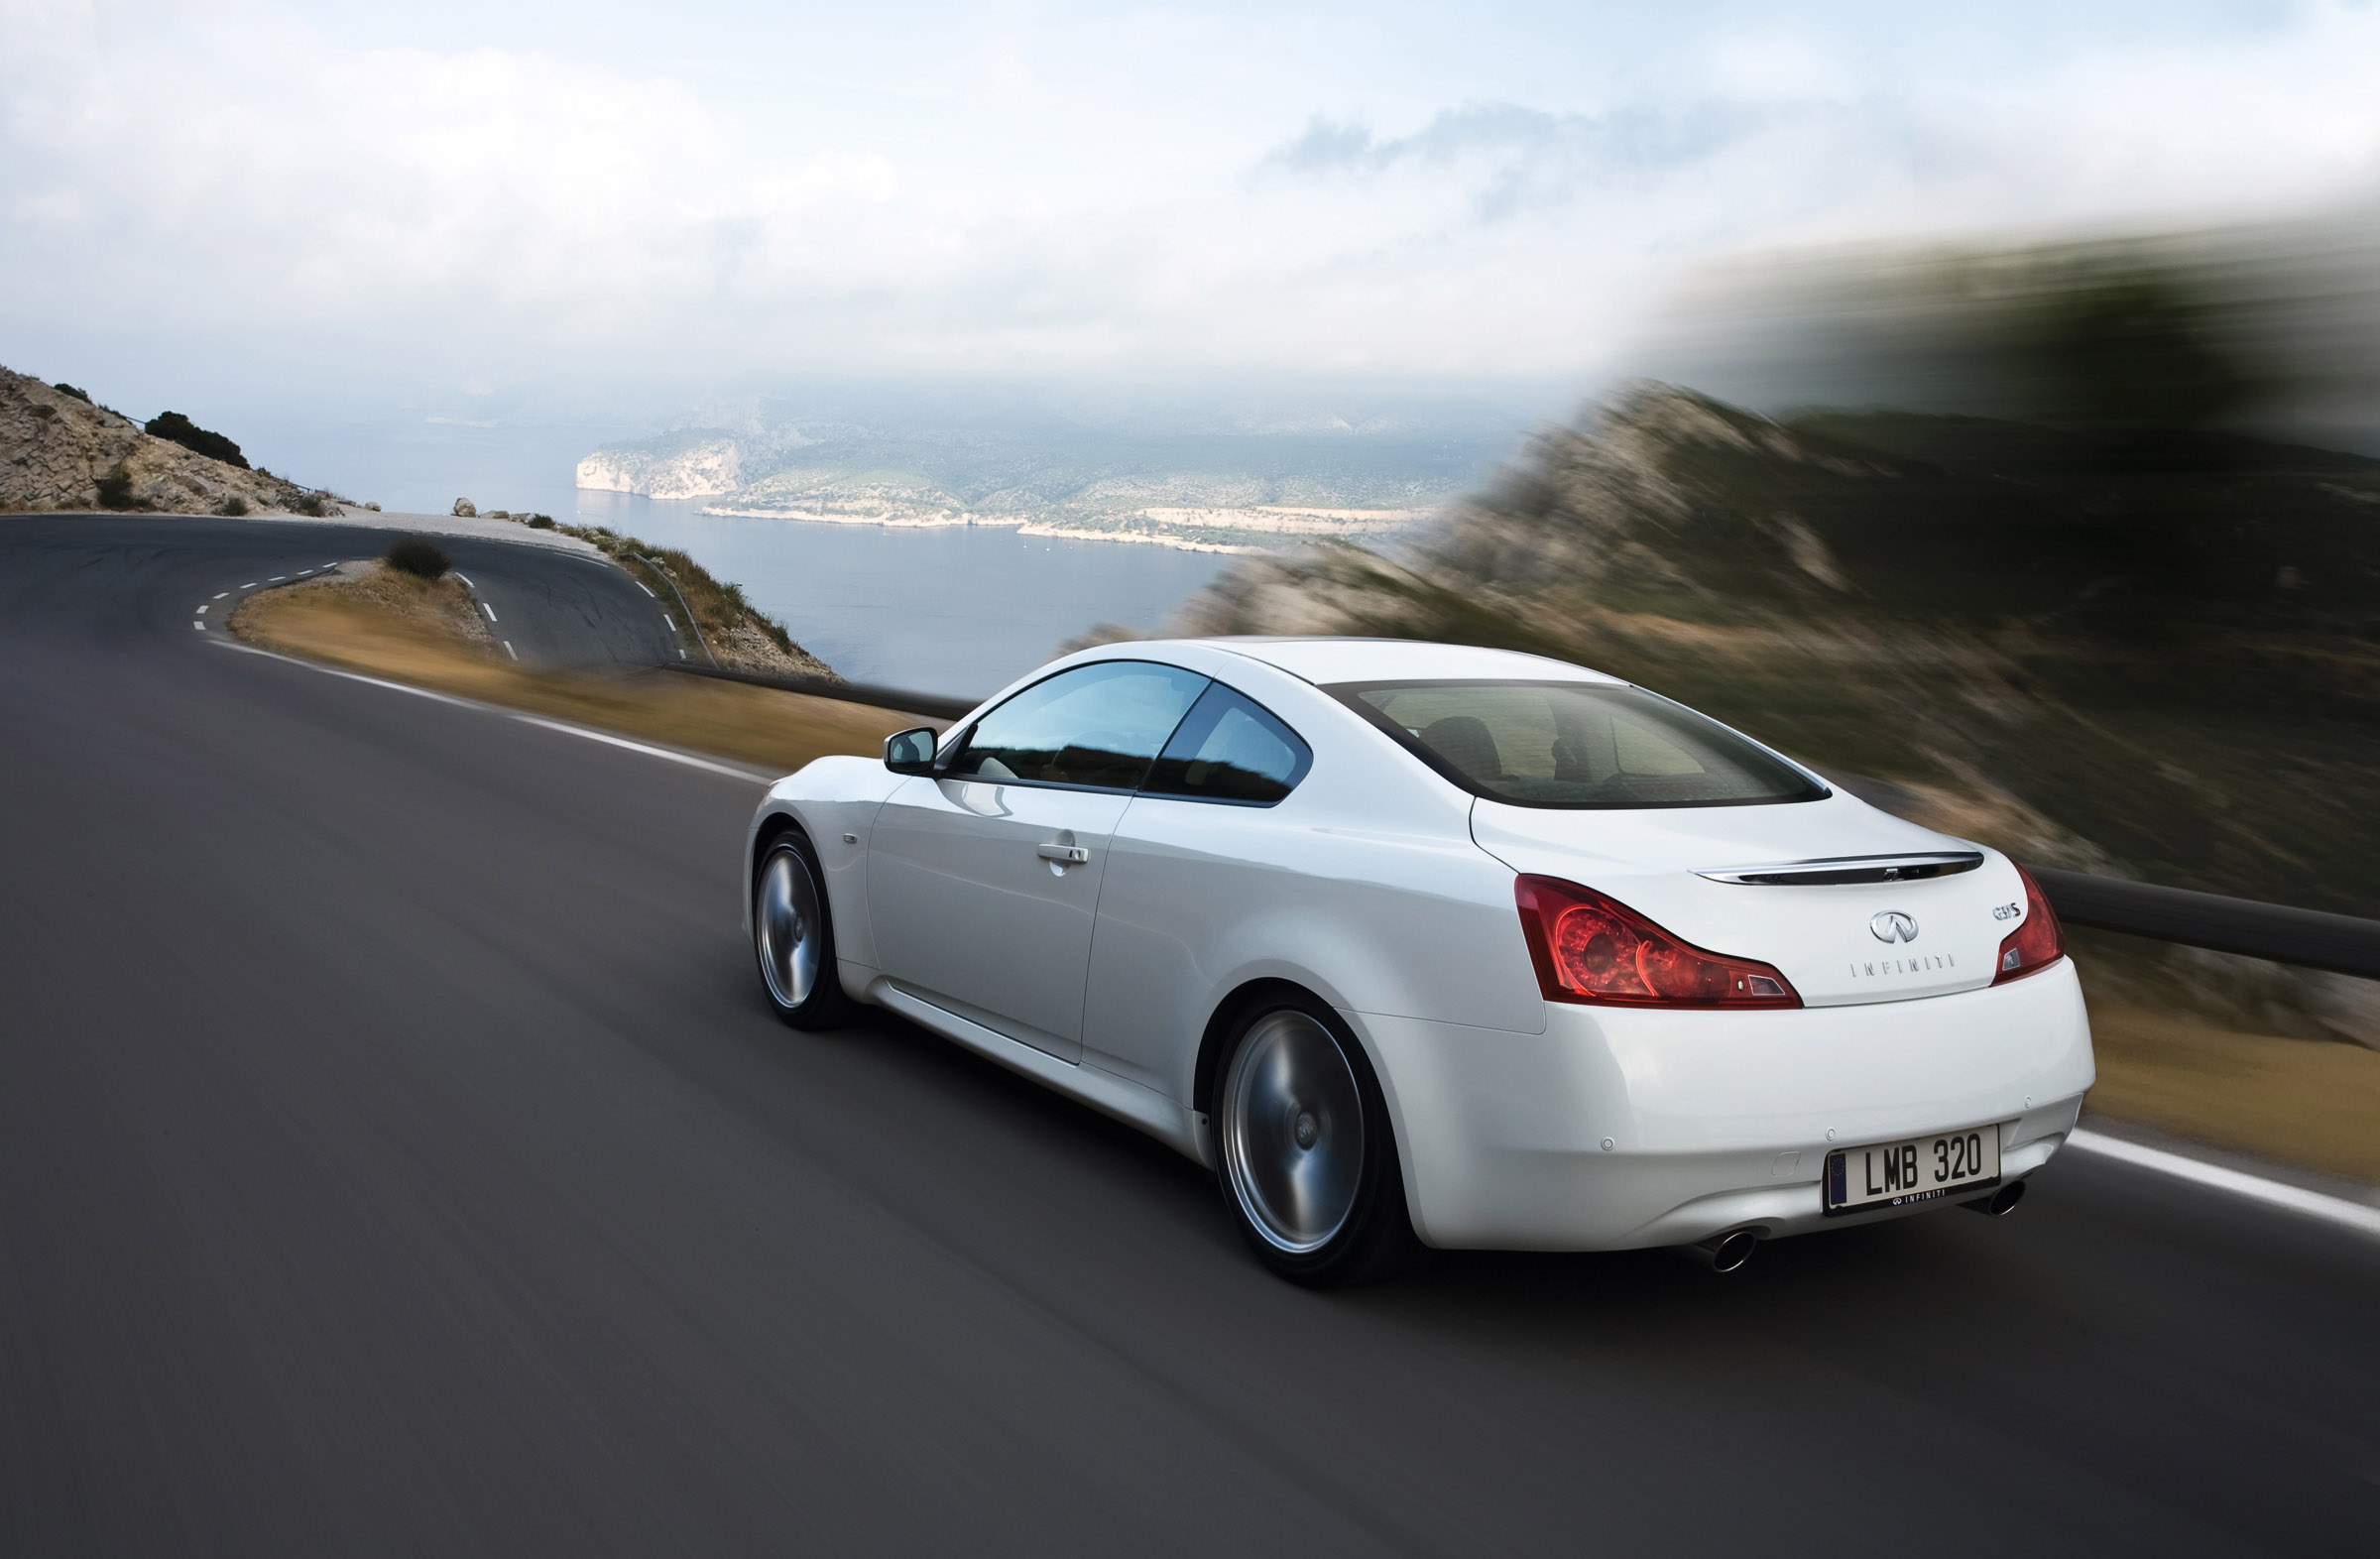 8064 on 2009 g37 coupe